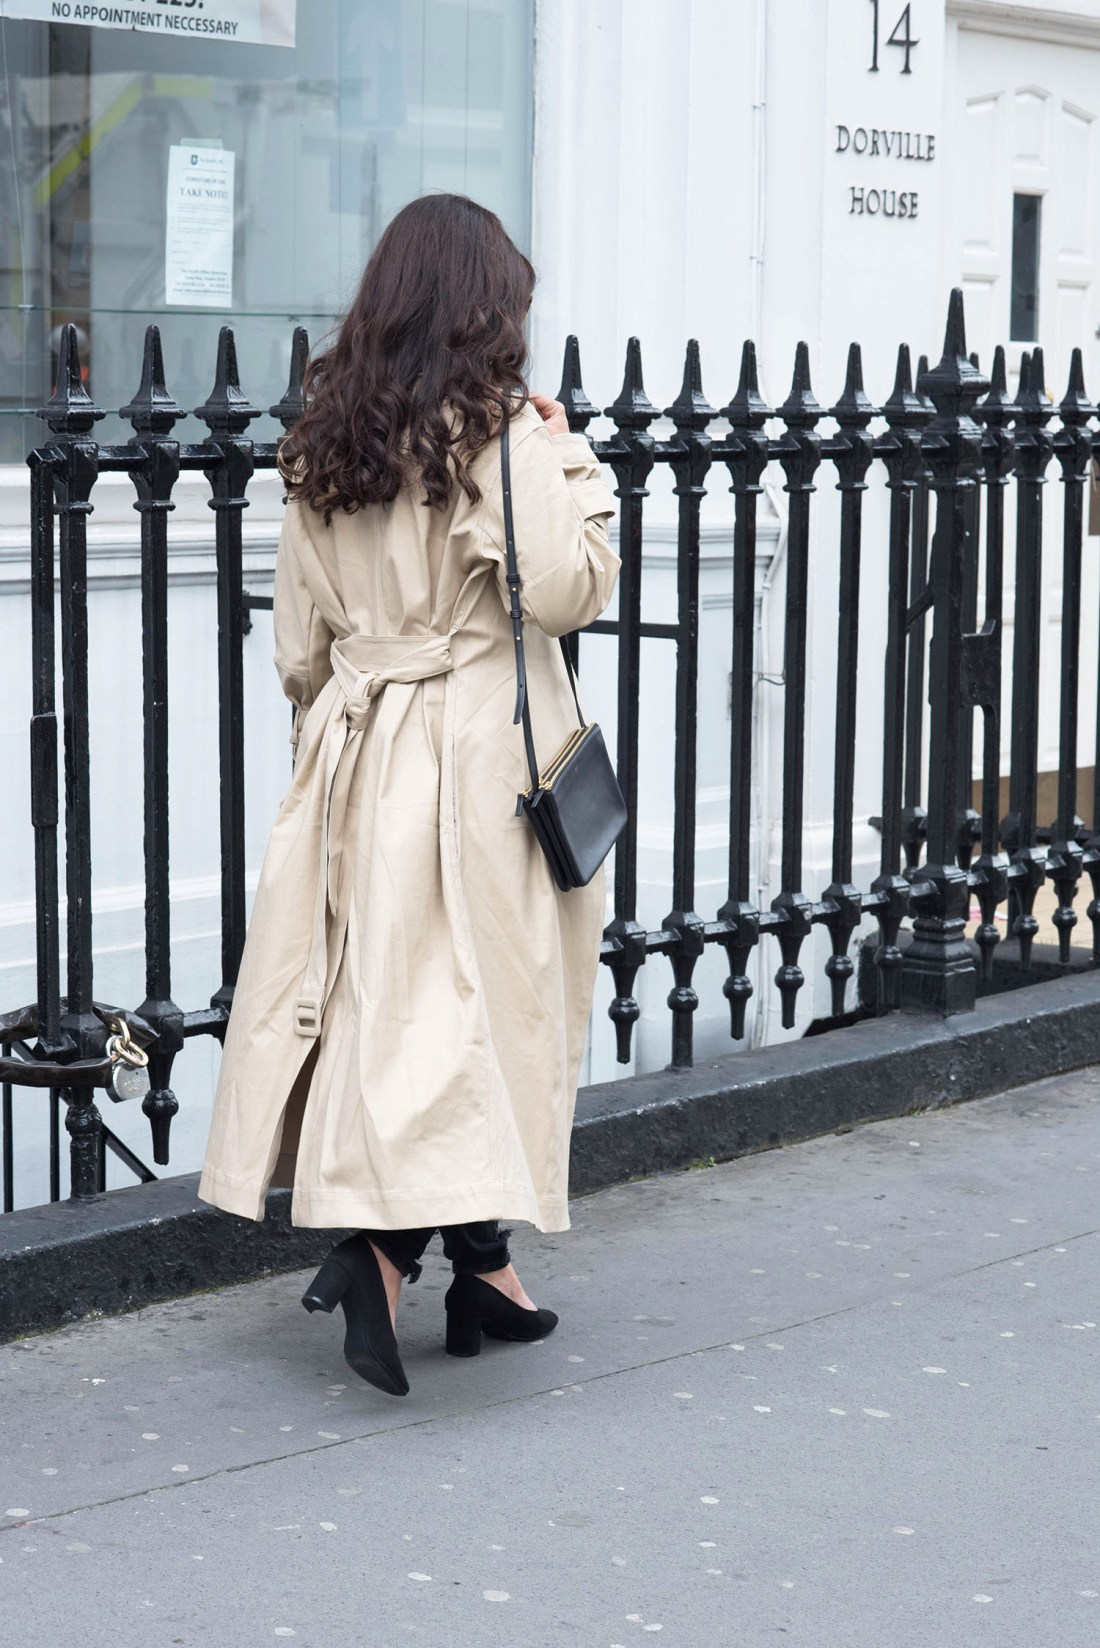 Fashion blogger Cee Fardoe of Coco & Vera walks in London wearing an H&M trench coat and carrying a Celine trio bag